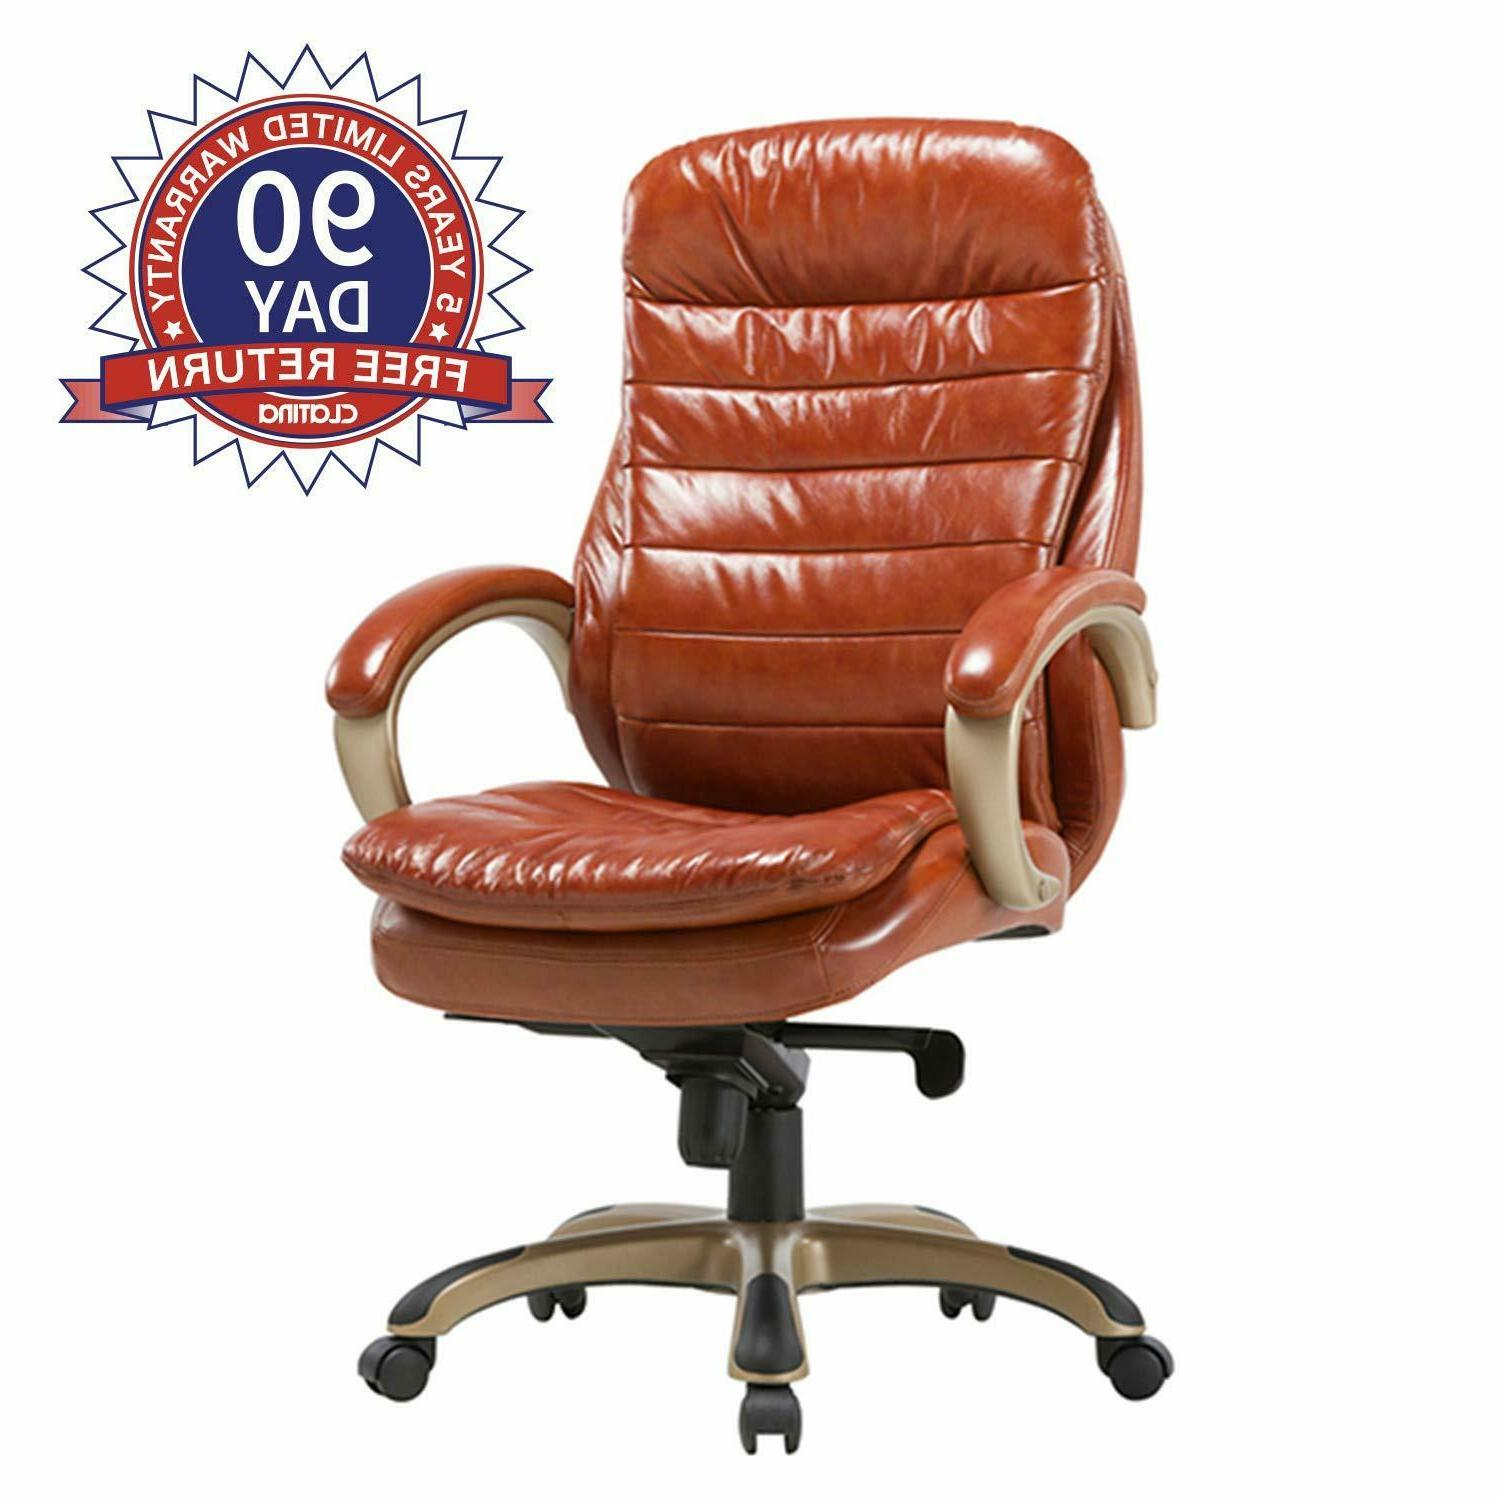 Executive Bonded Leather Chair Comfort Padding Ergonomic Sea